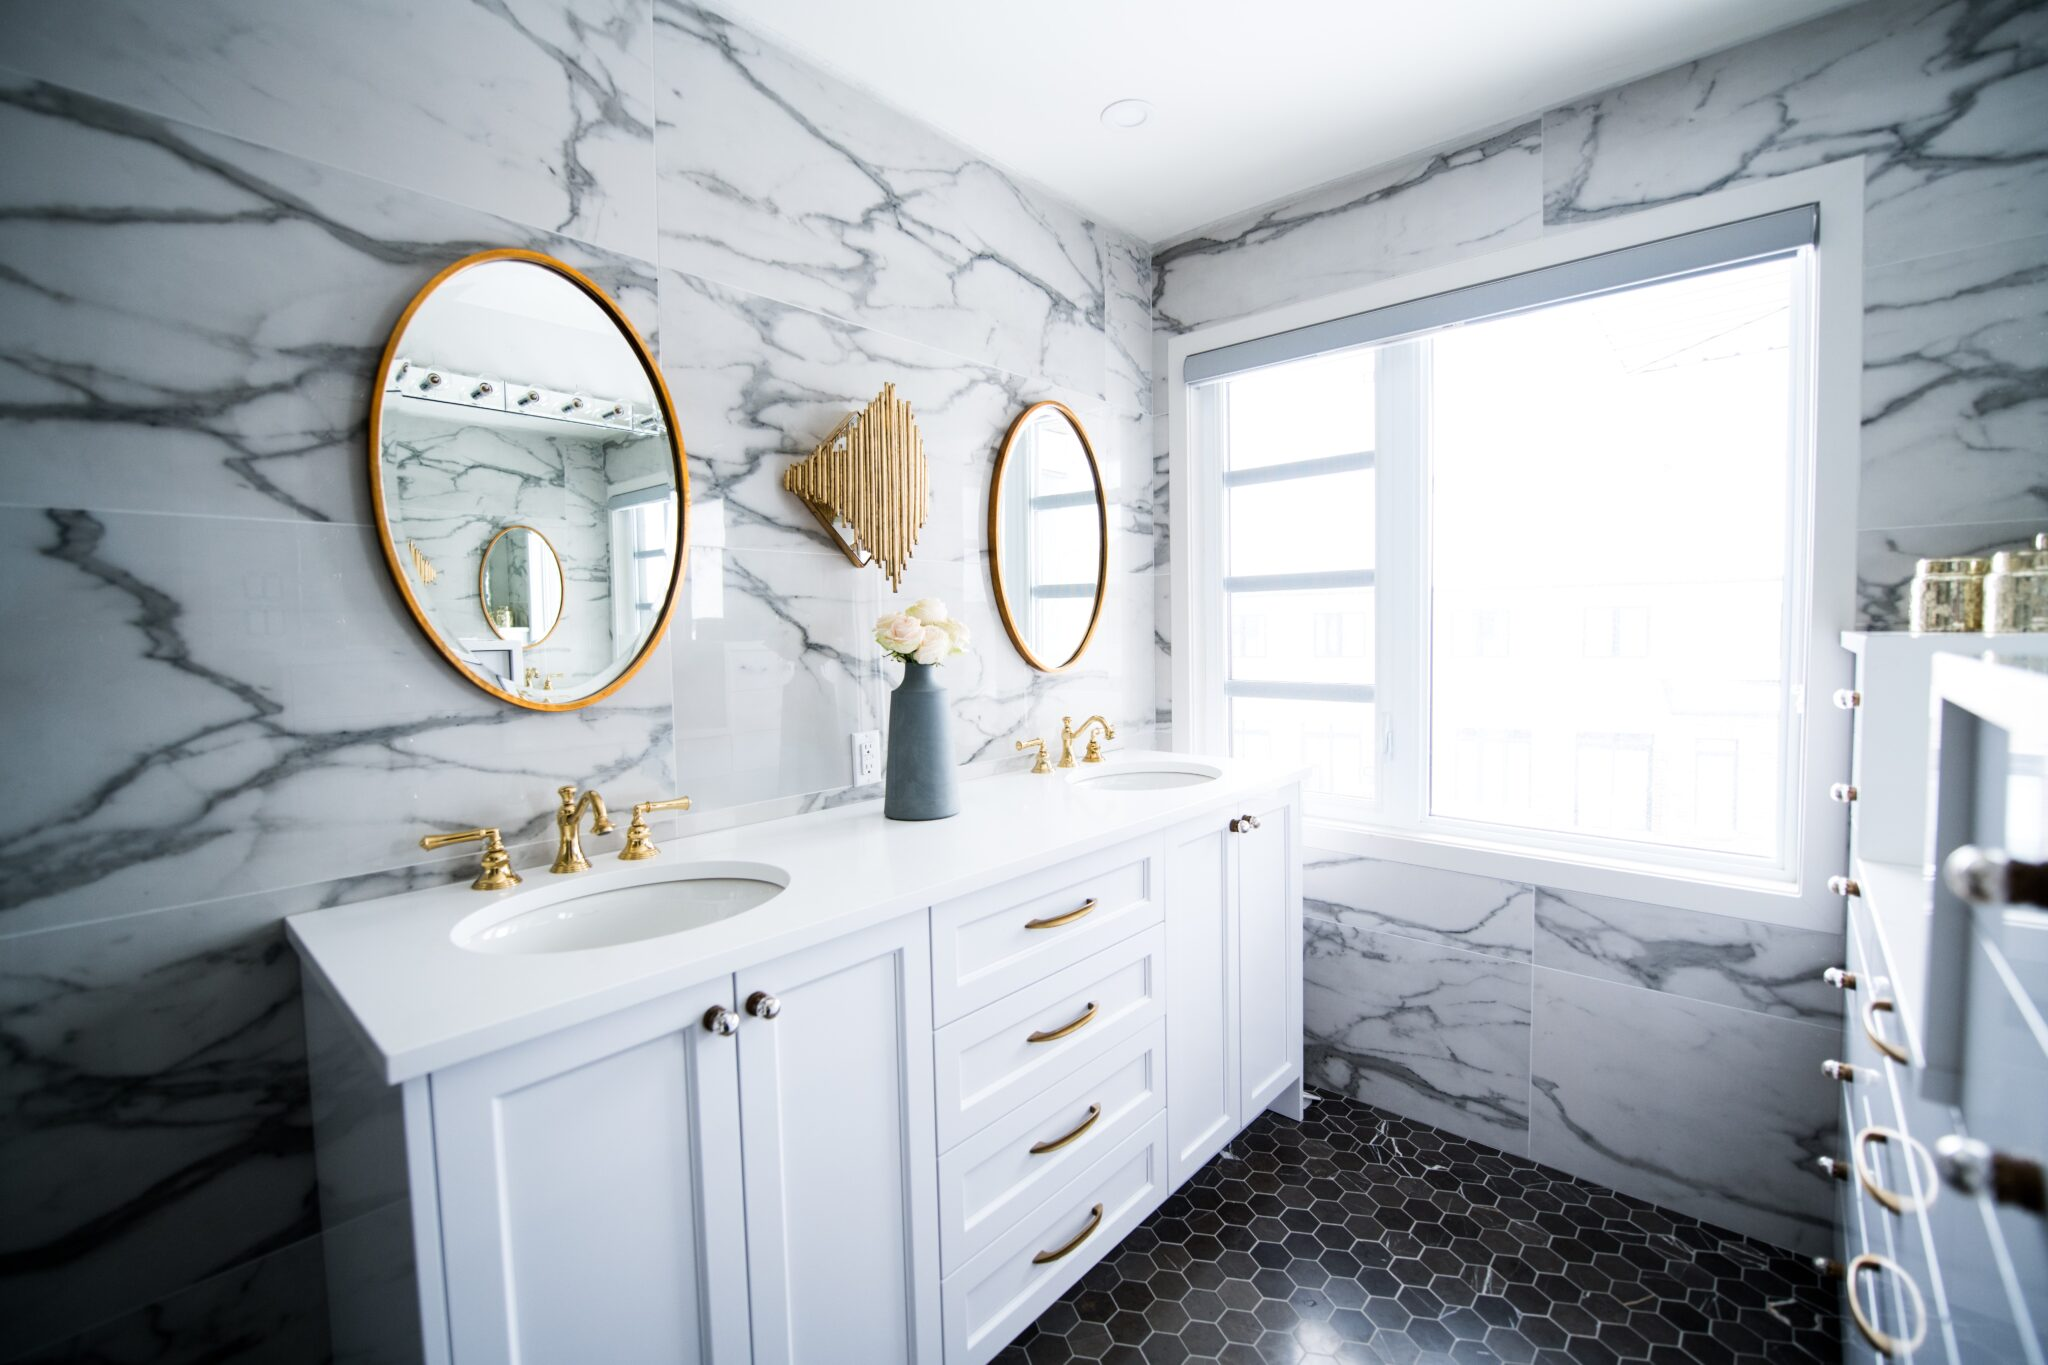 gold accent and hardware for a glamorous bathroom design